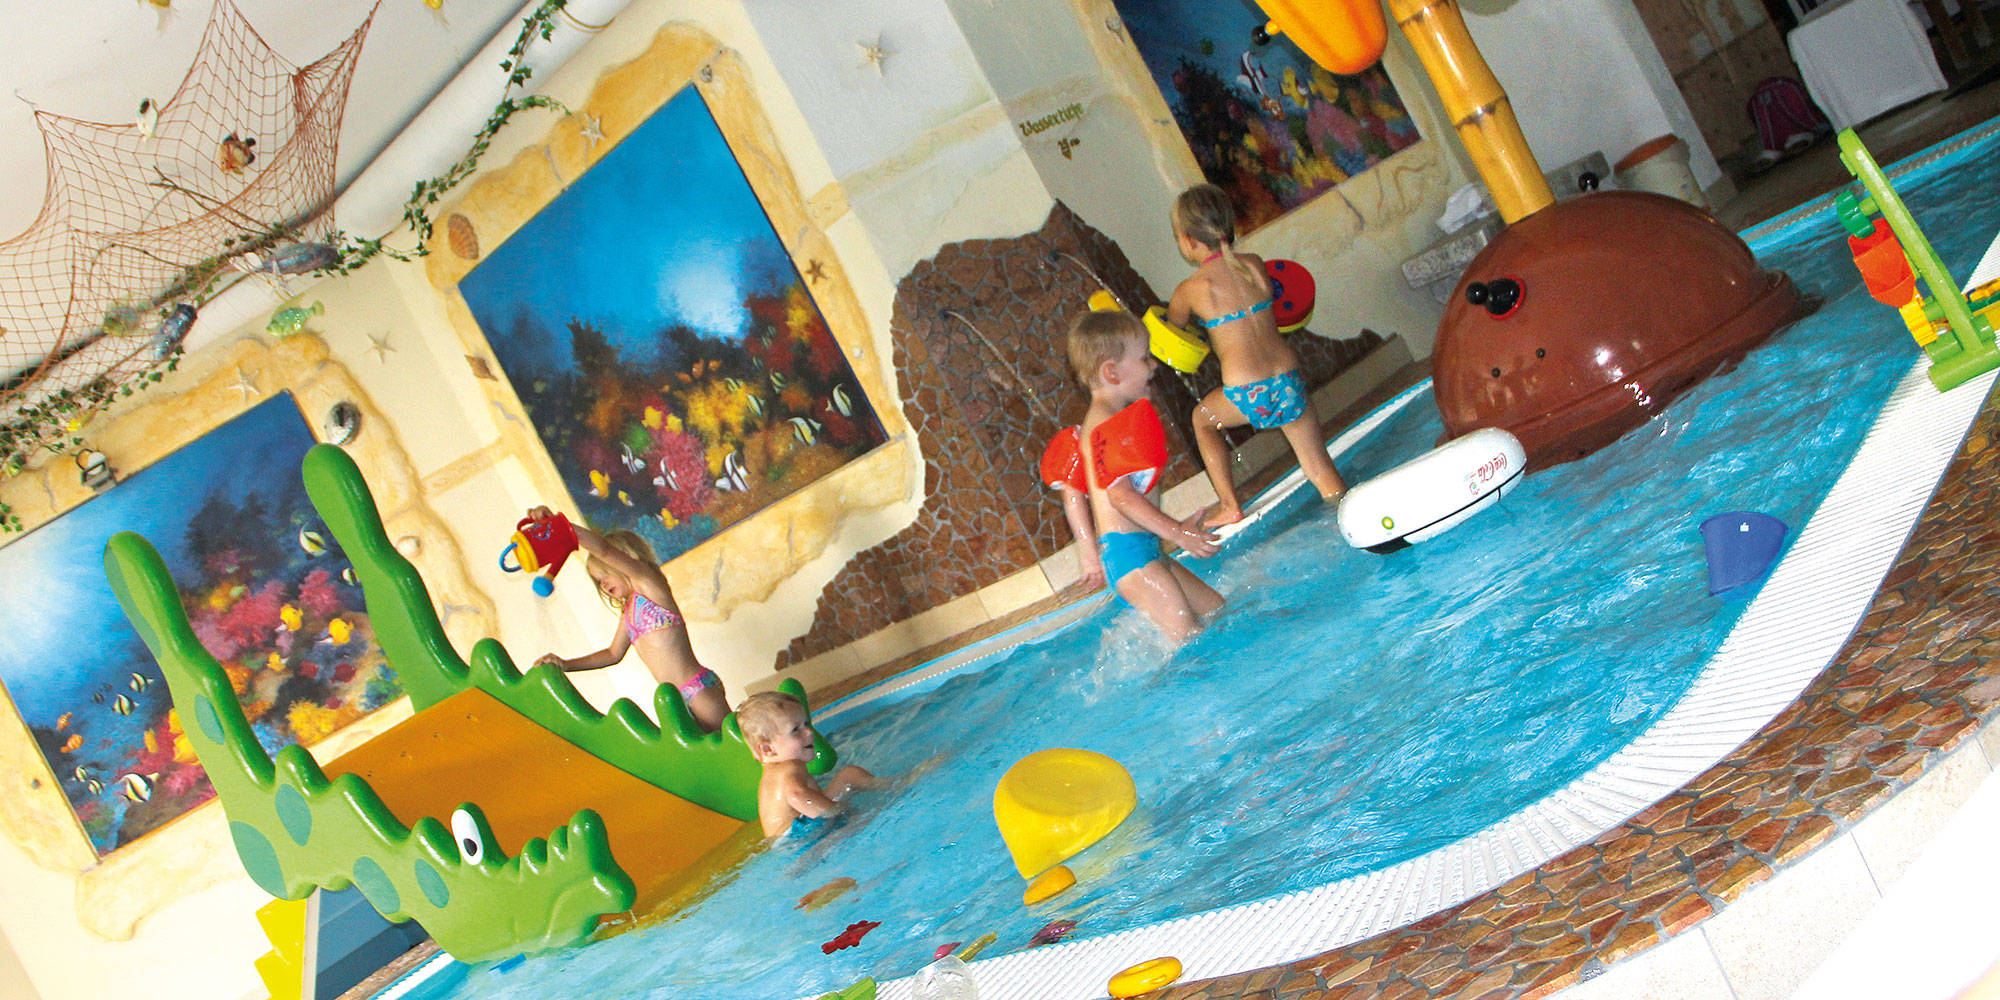 Smileyhotel - Pool - Indoor - Baby